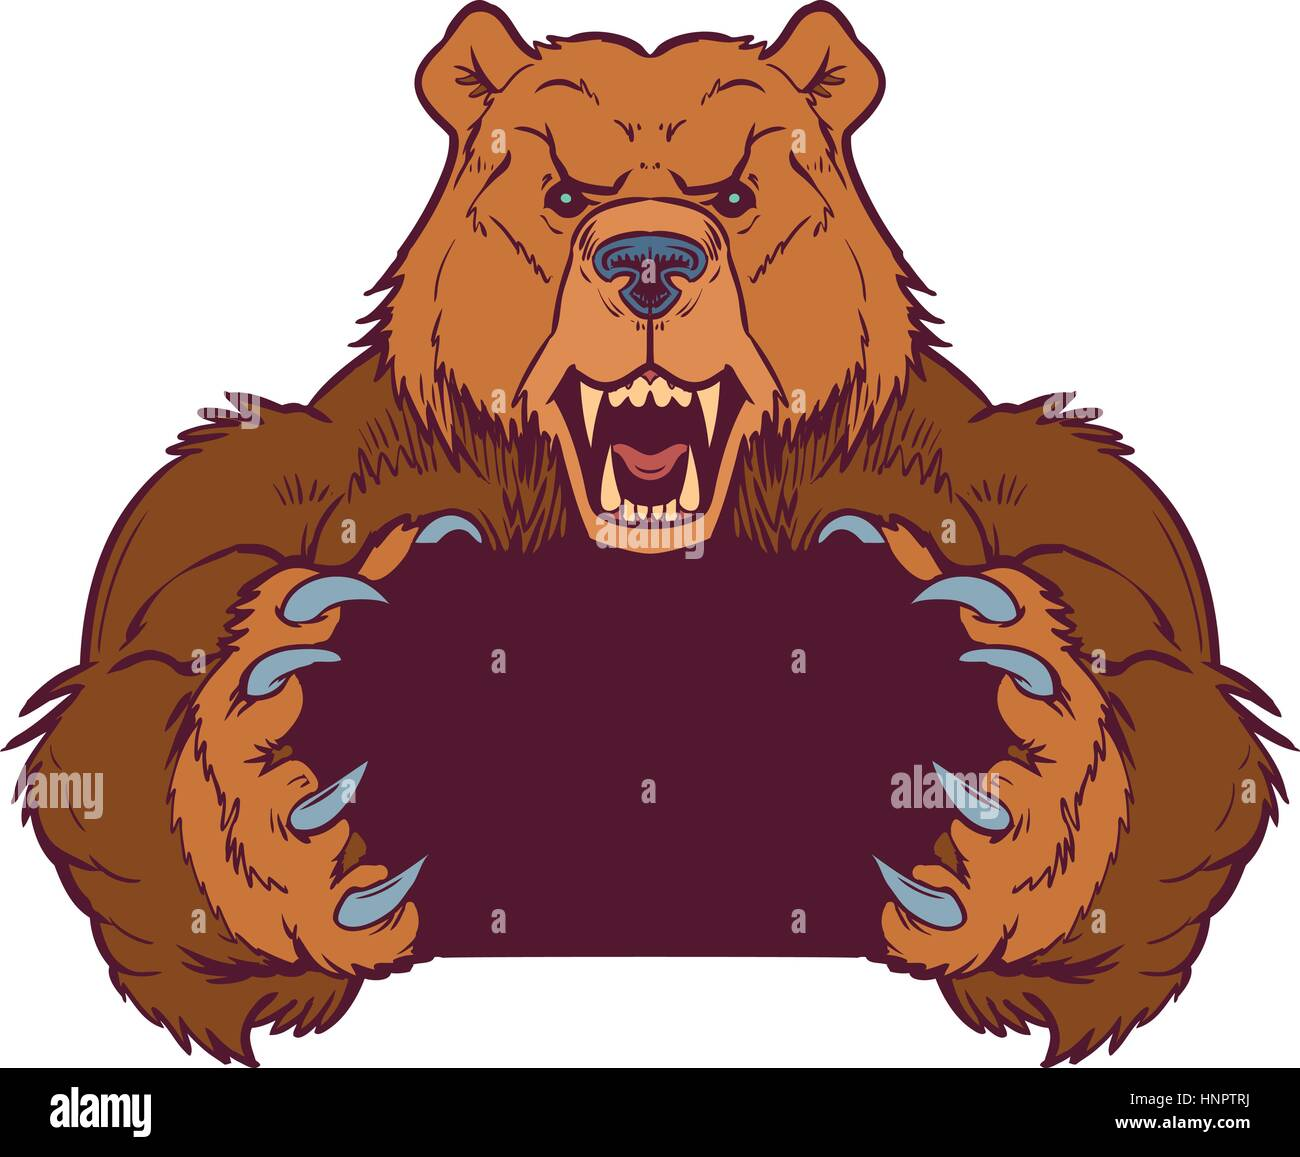 Cartoon vector clip art illustration template of a brown bear mascot holding or gripping empty space between its - Stock Vector